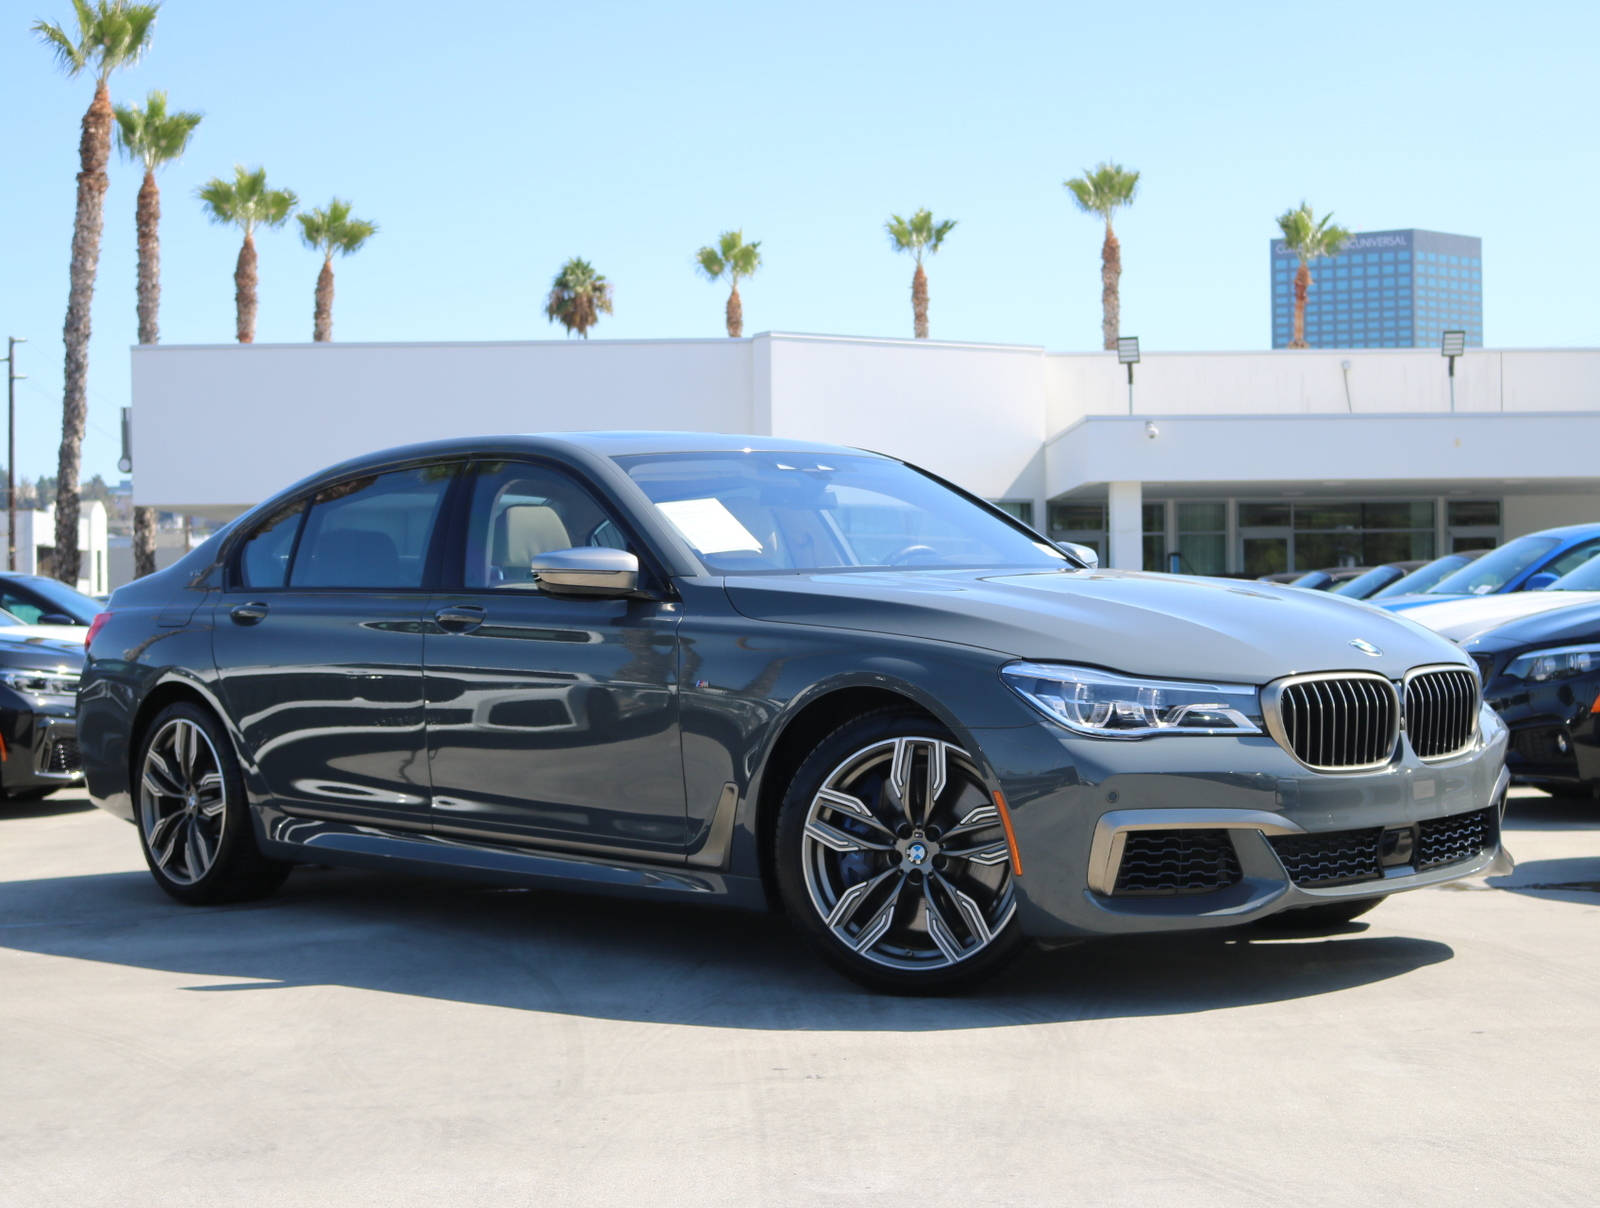 Certified Pre-Owned 2018 BMW 7 Series M760i xDrive